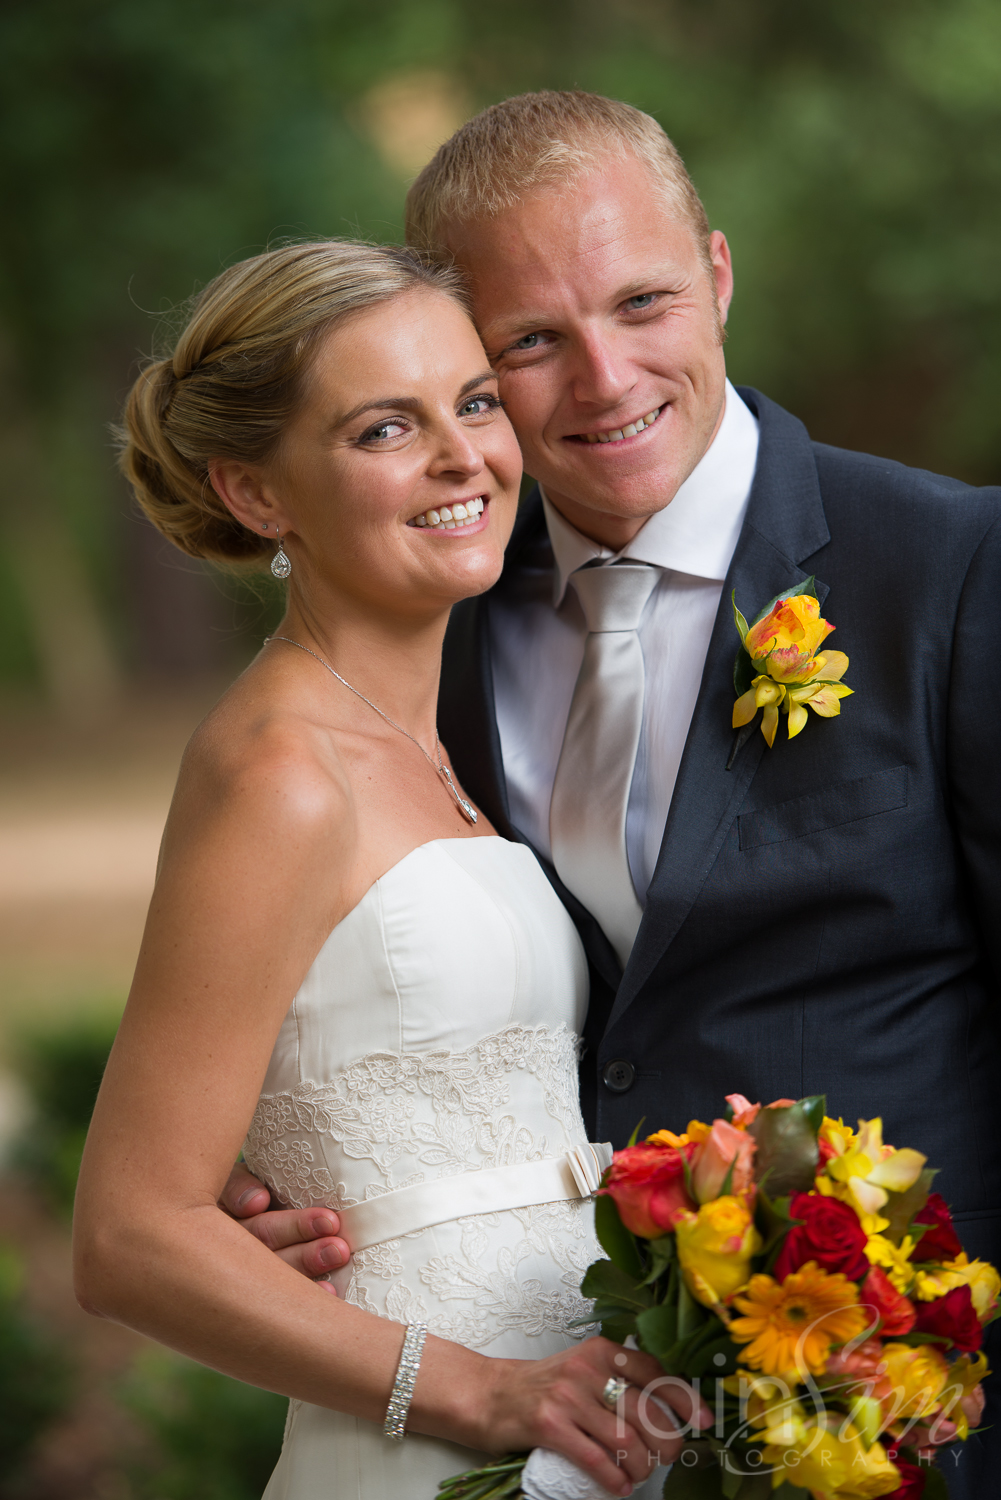 Renee and Chris at The Centre Ivanhoe by Iain Sim Photography